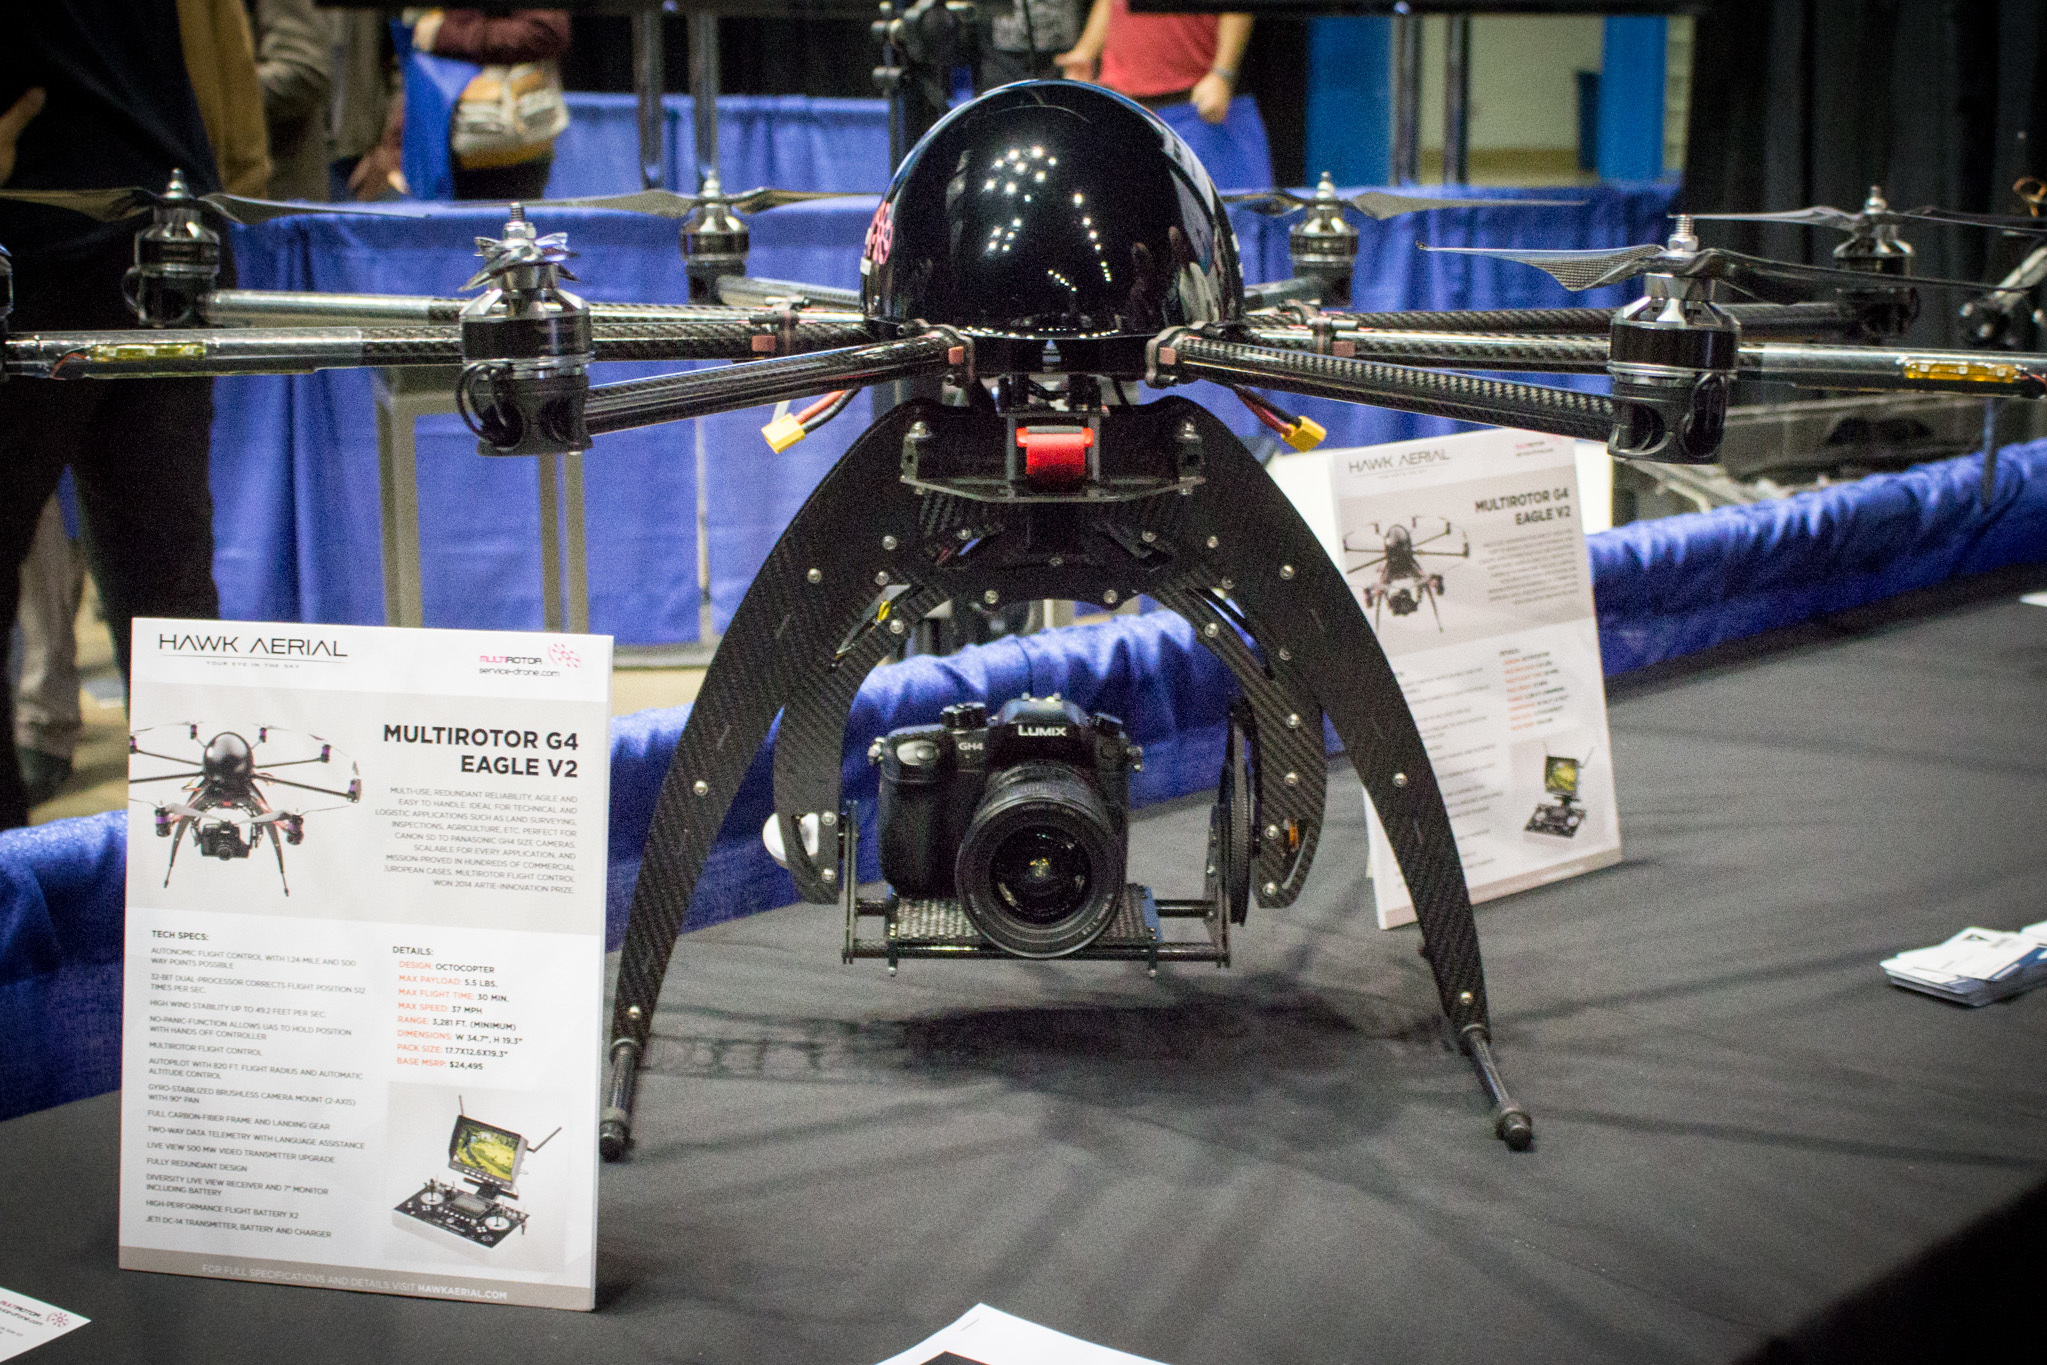 Meet your new flying robot best friend